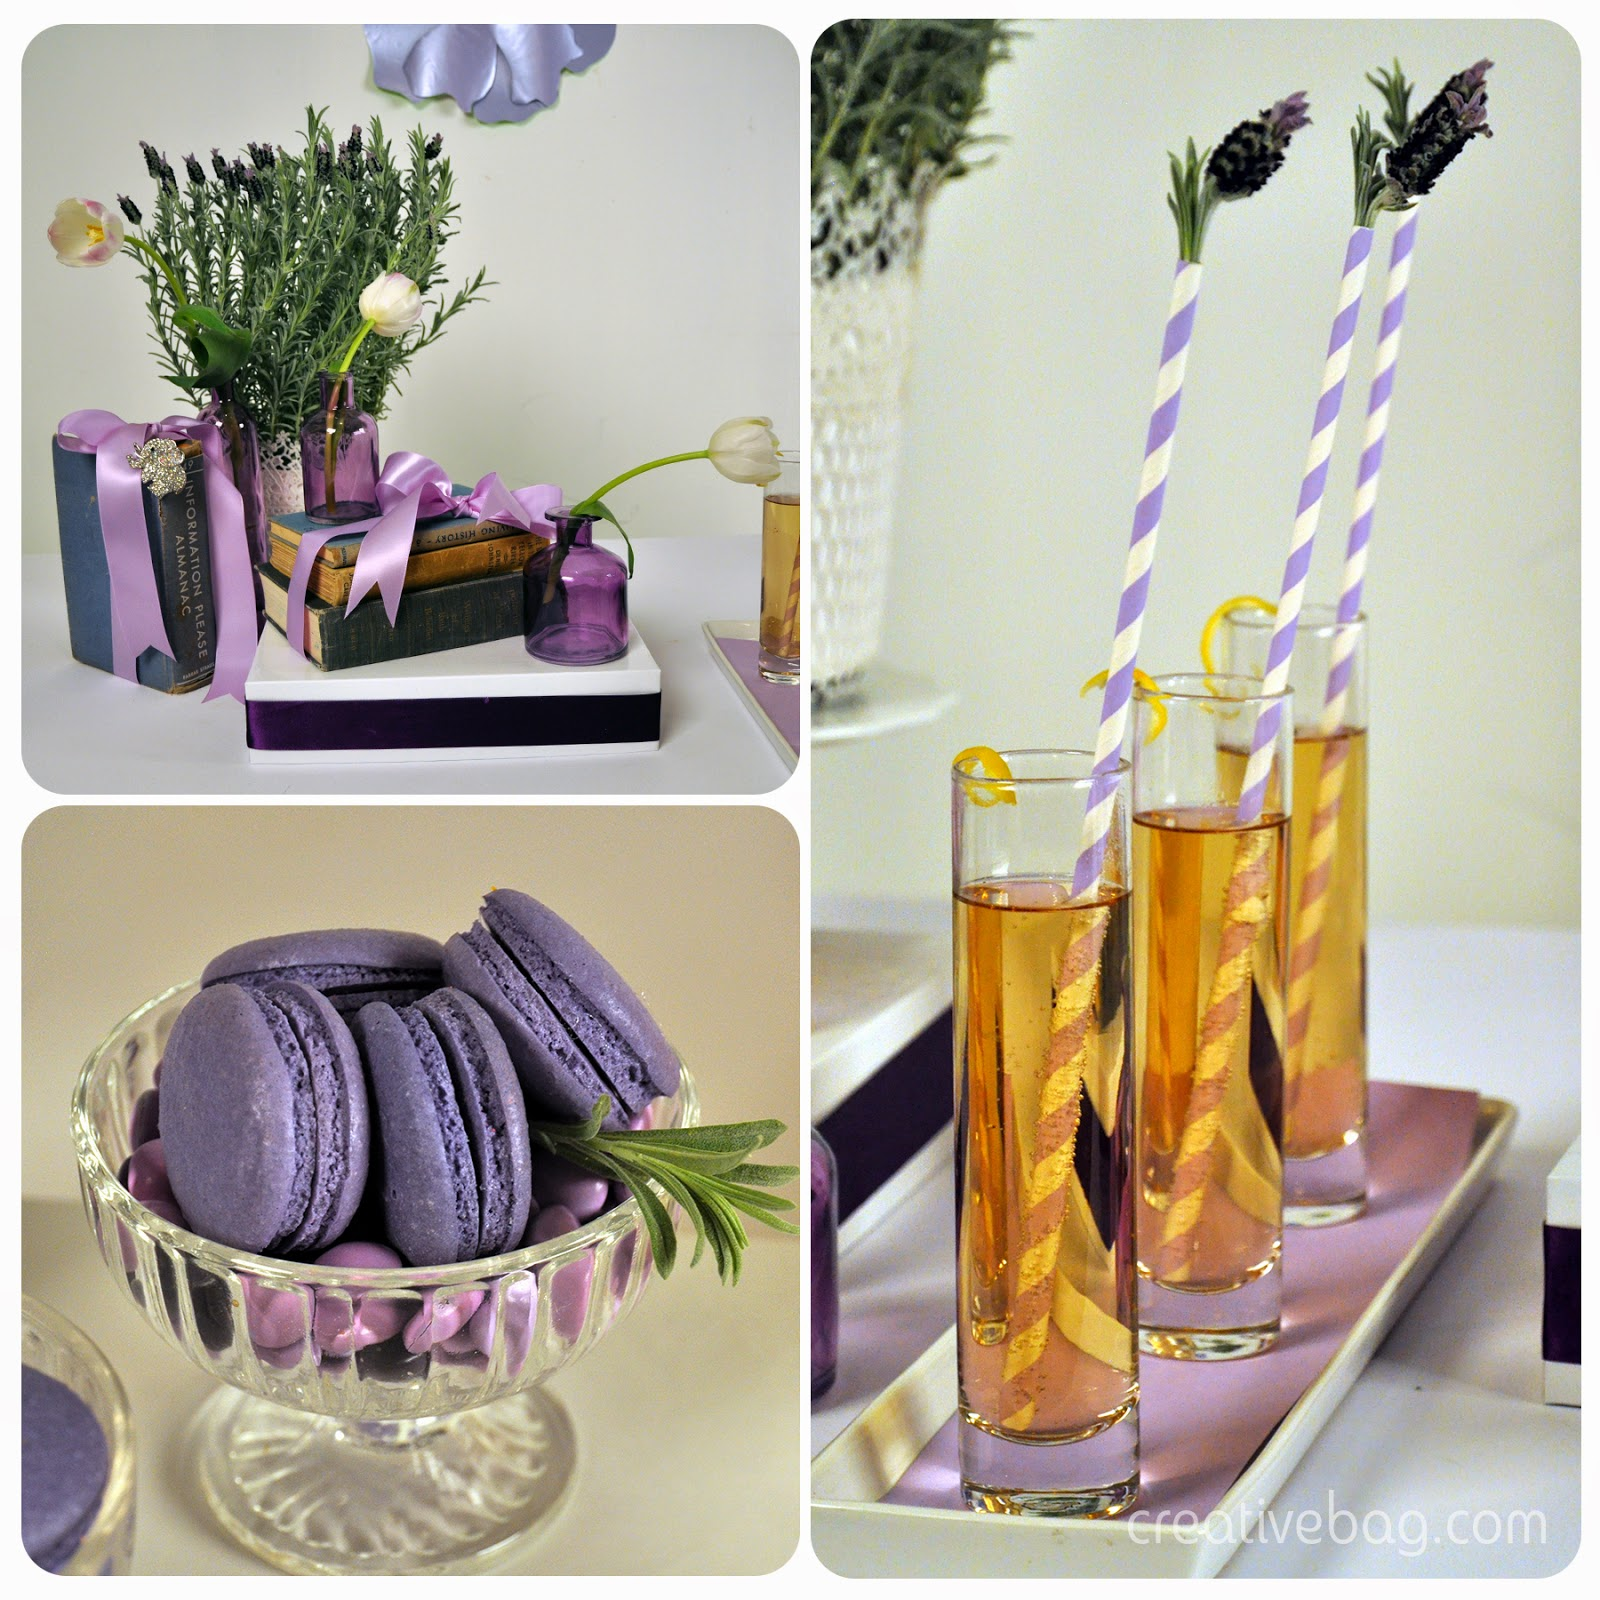 popcorn sweet table on YouTube - pretty grown up lavender theme